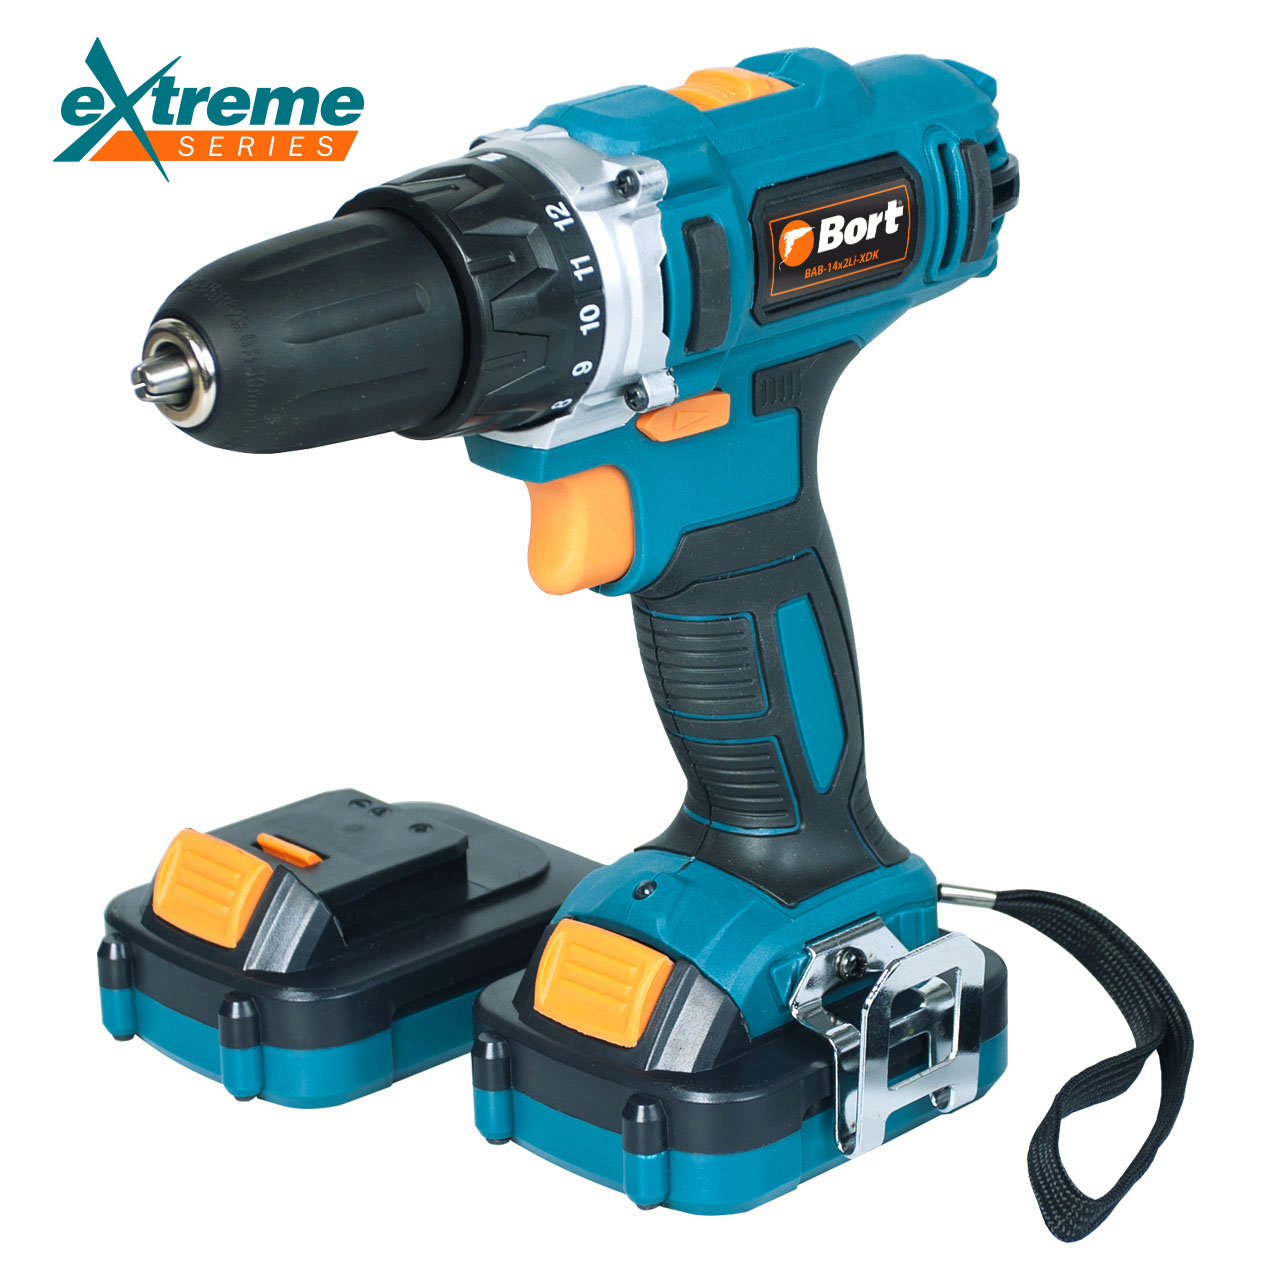 14V Bort Li-Ion Lithium Battery Electric Drill Cordless Screwdriver Mini Drill Cordless Screwdriver Power Tools Cordless Drill BAB-14x2Li-XDK 60v scooter electric bike motorcycle 3000w lithium ion battery pack